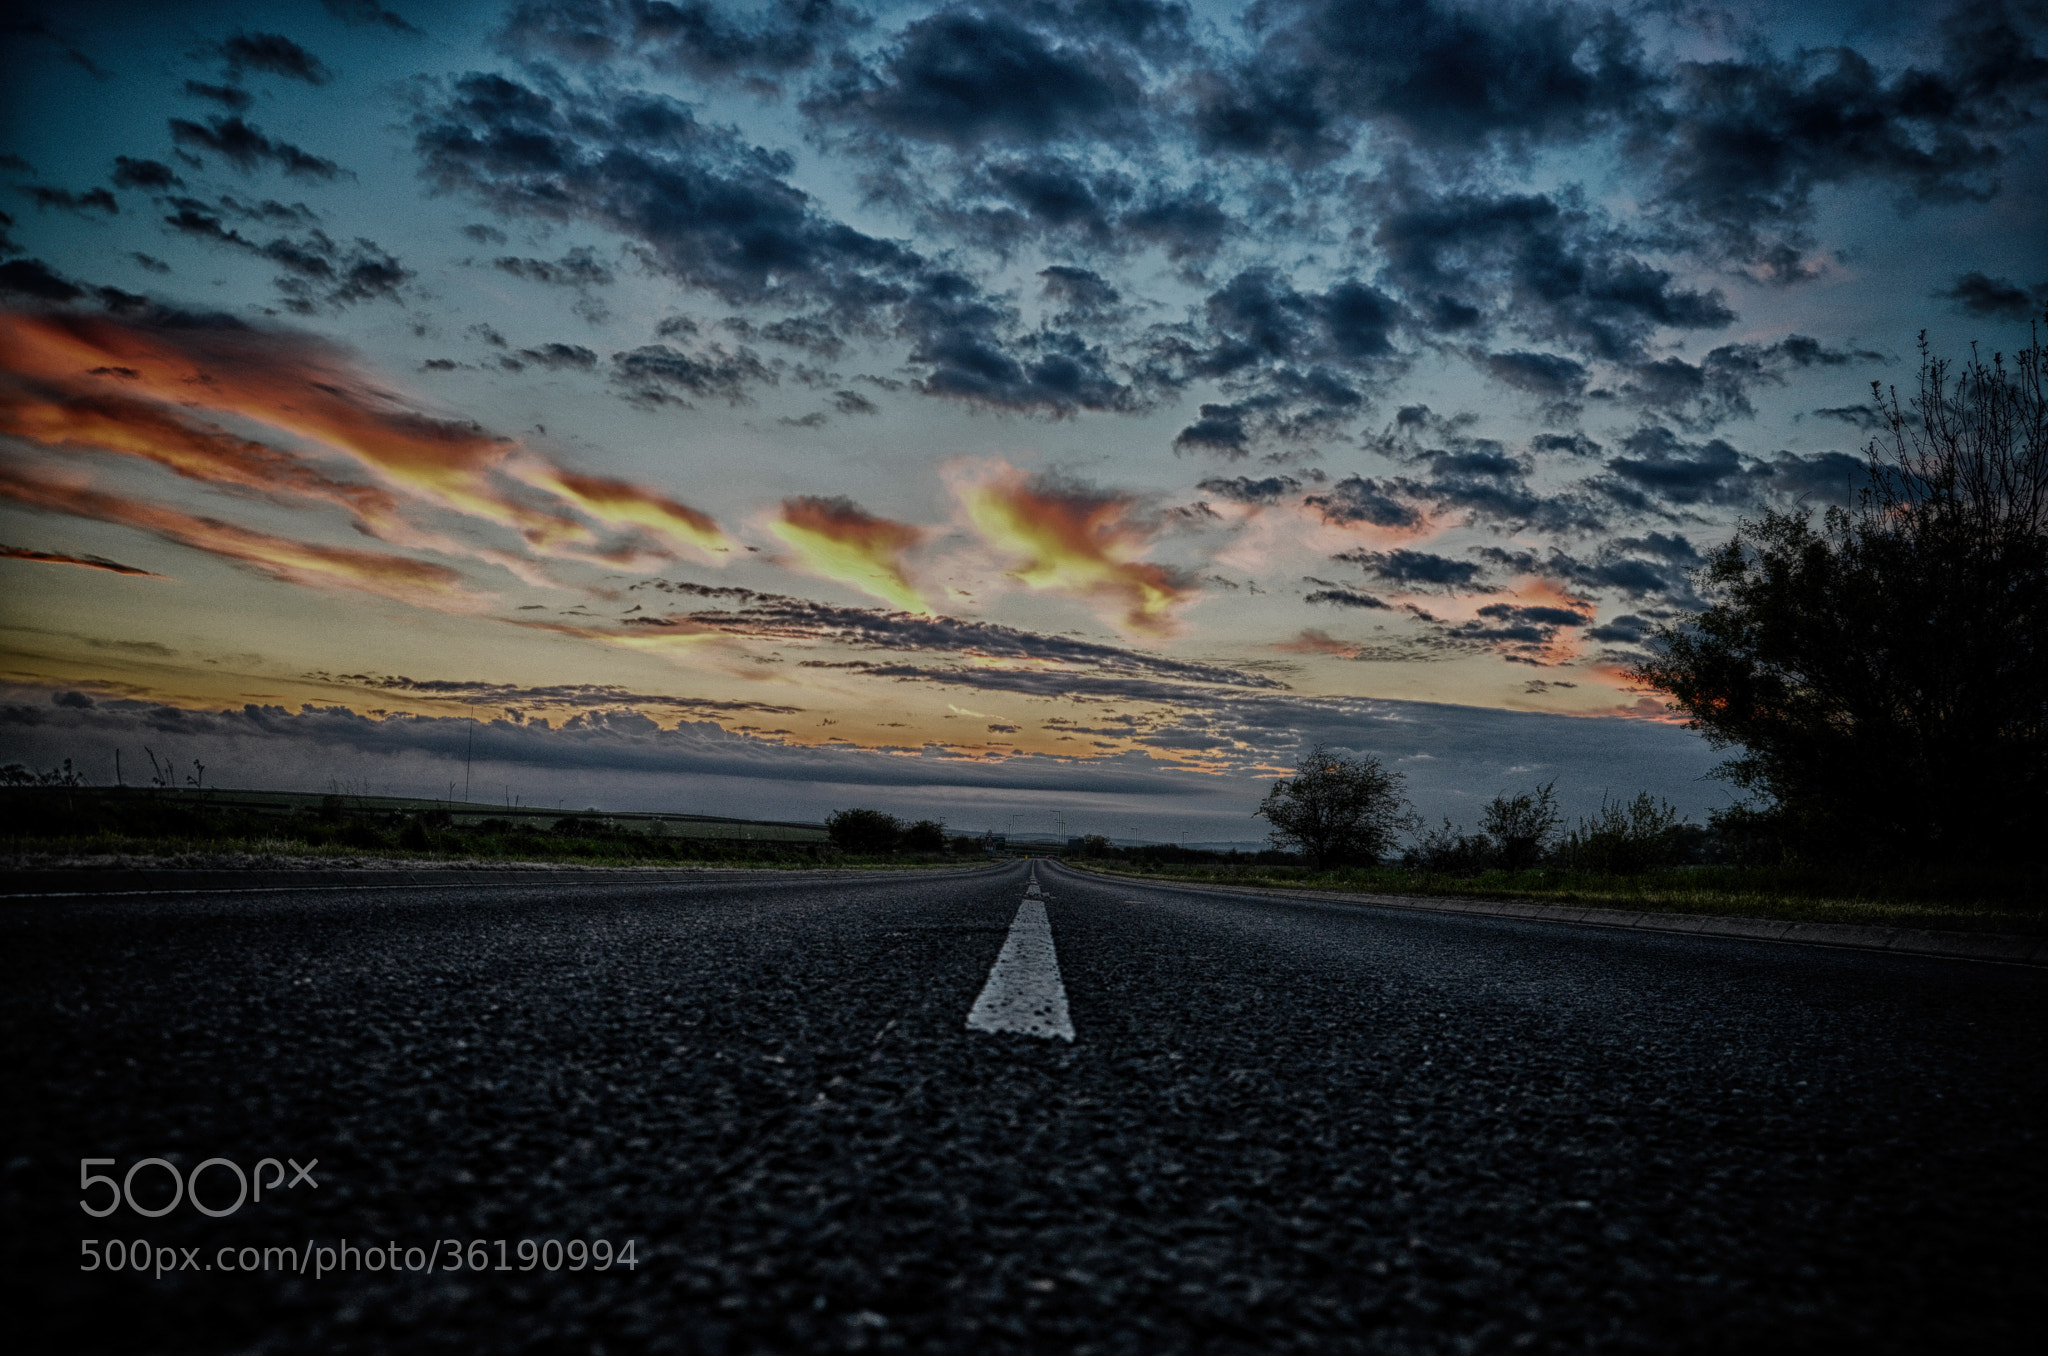 Photograph Sunset Road by MalekPhotography on 500px